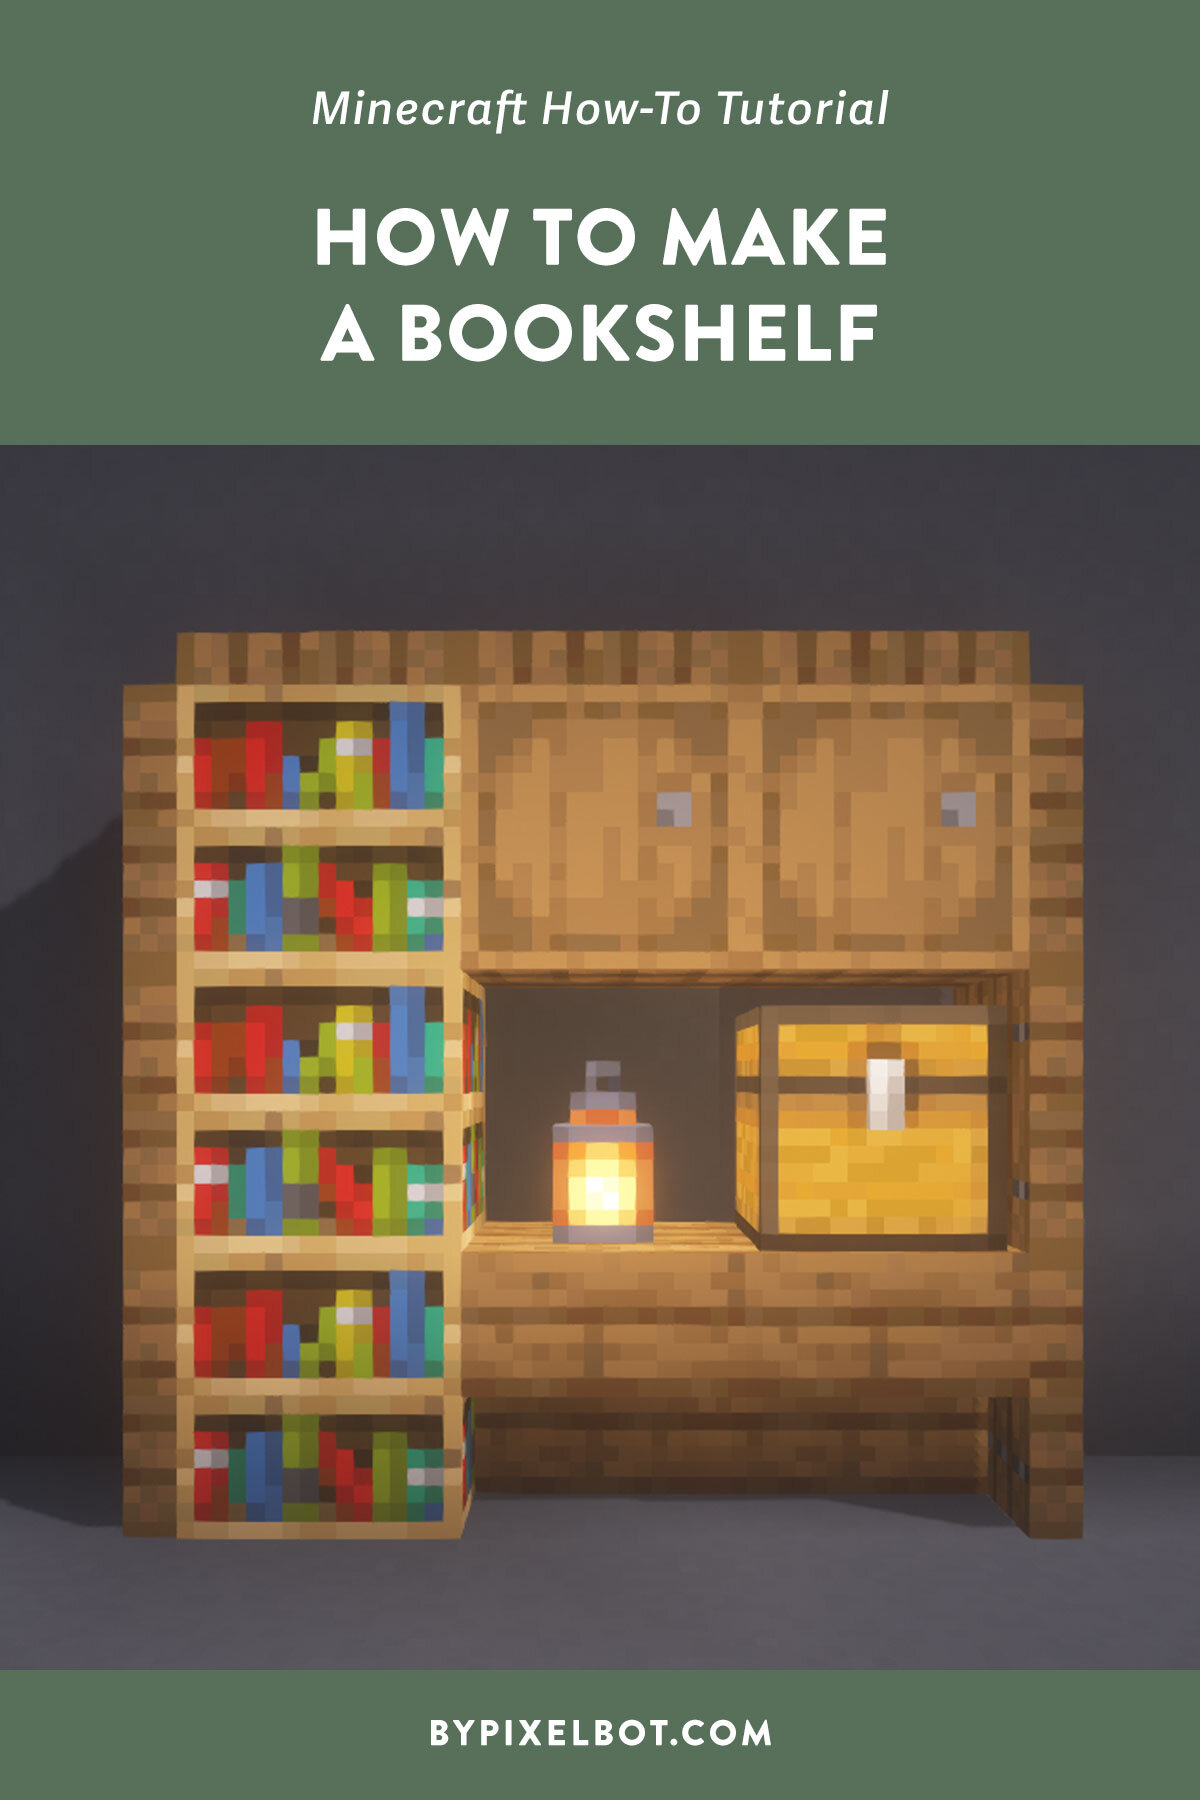 How to Make a Bookshelf in Minecraft Easy Step by Step — ByPixelbot